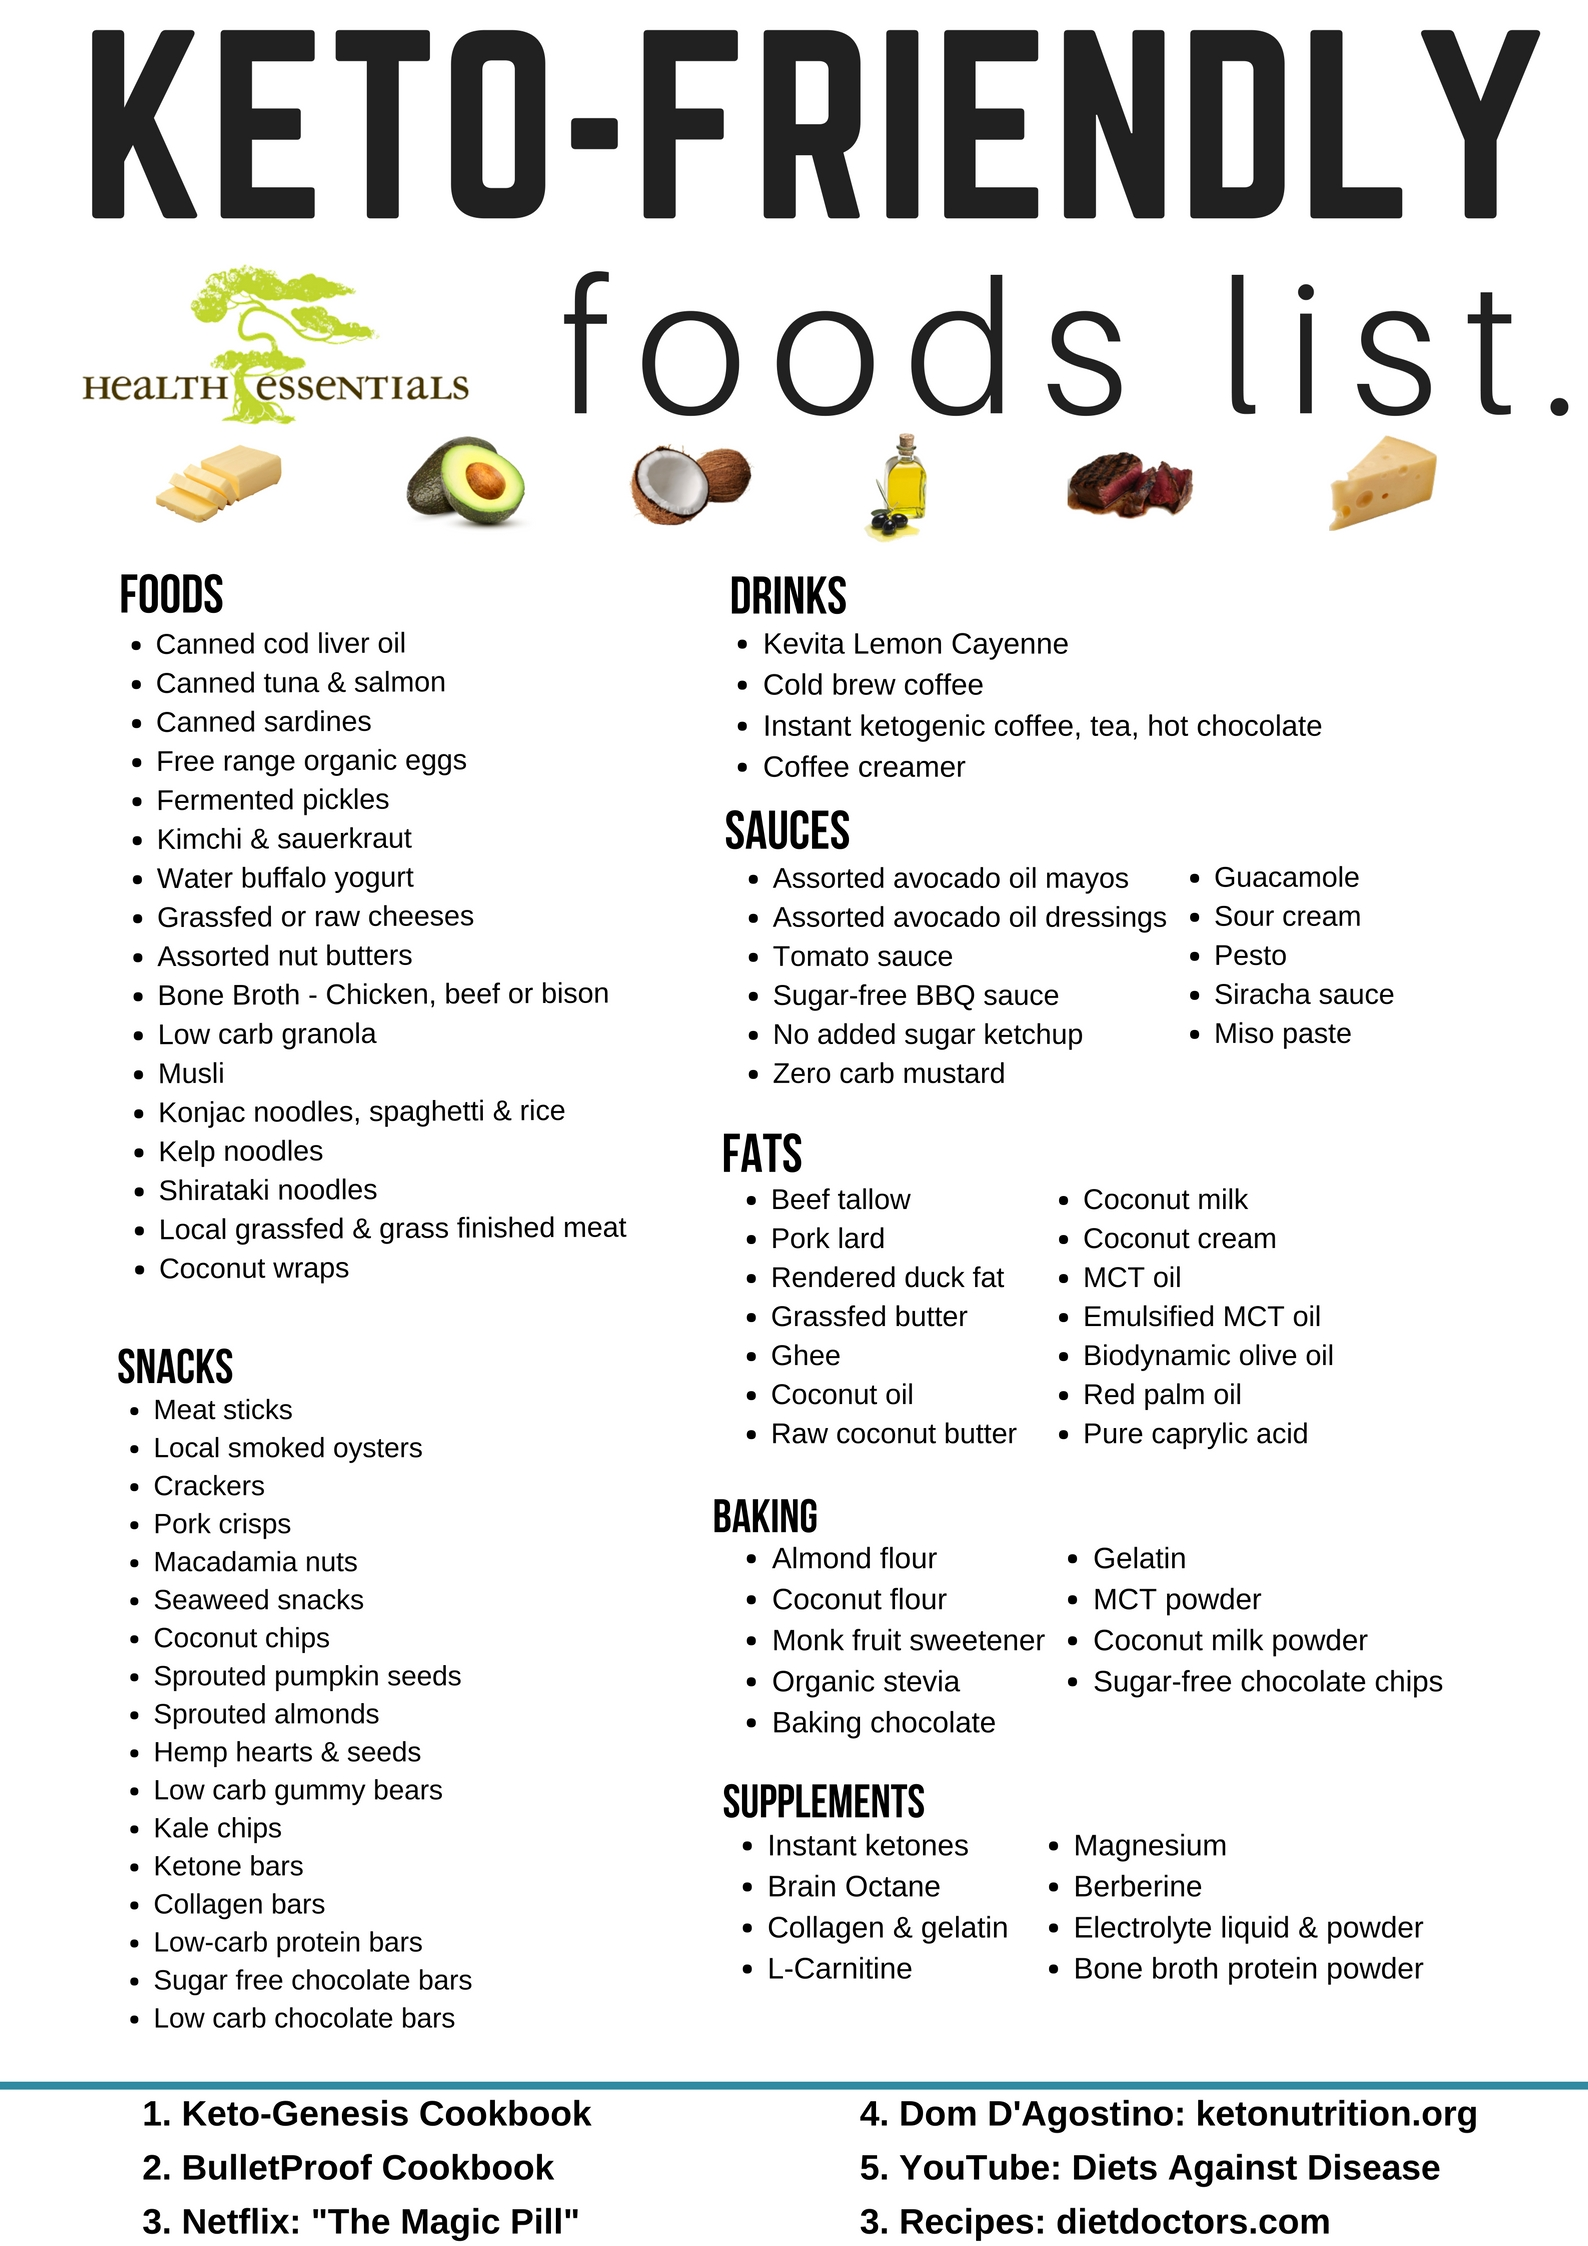 Ketogenic Friendly Foods List Updated | Health Essentials